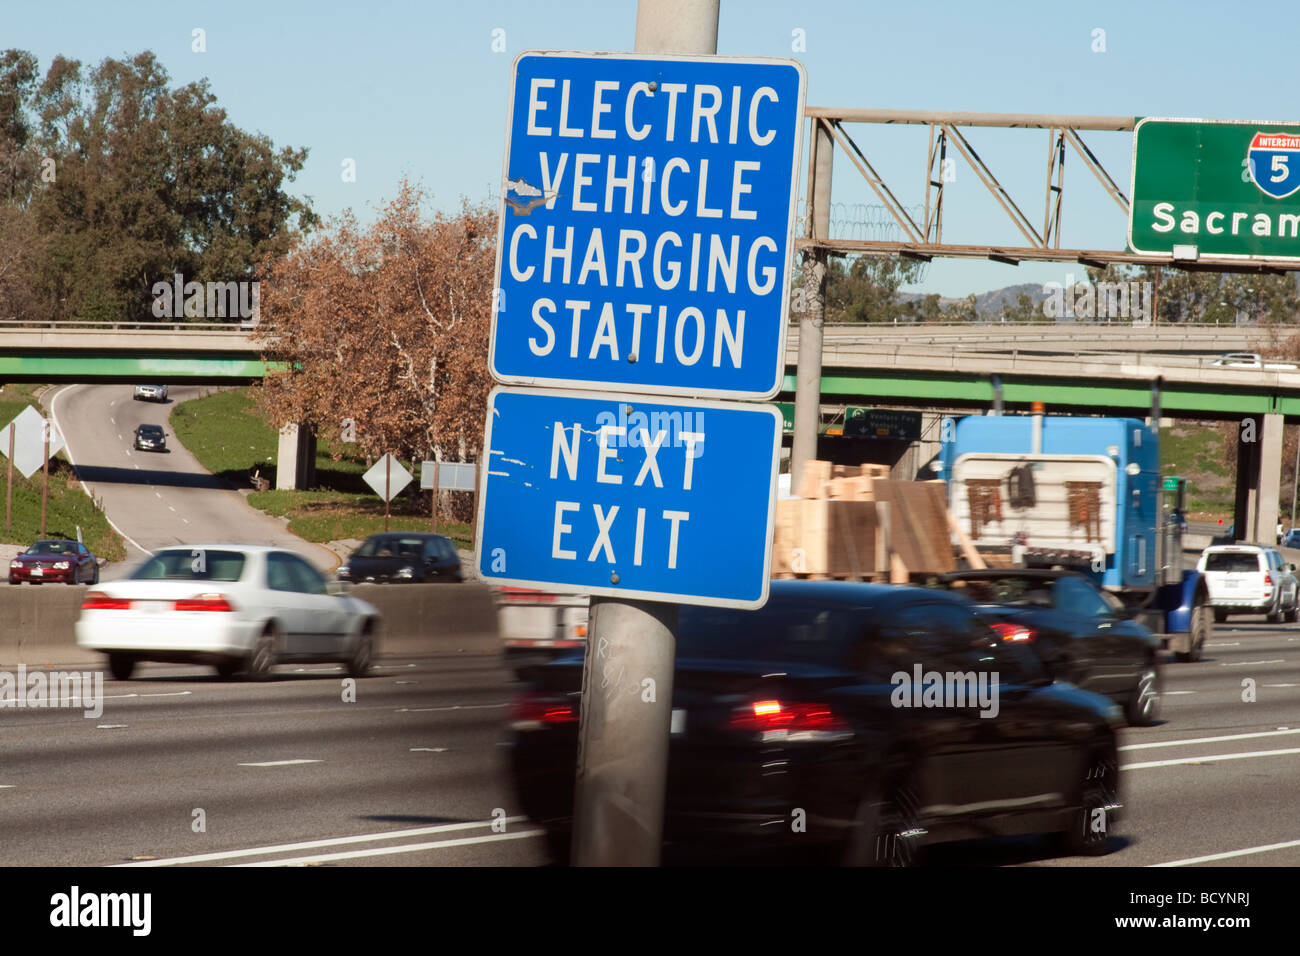 Electric Vehicle Charging Station Sign, I-5, Los Angeles, California, USA - Stock Image